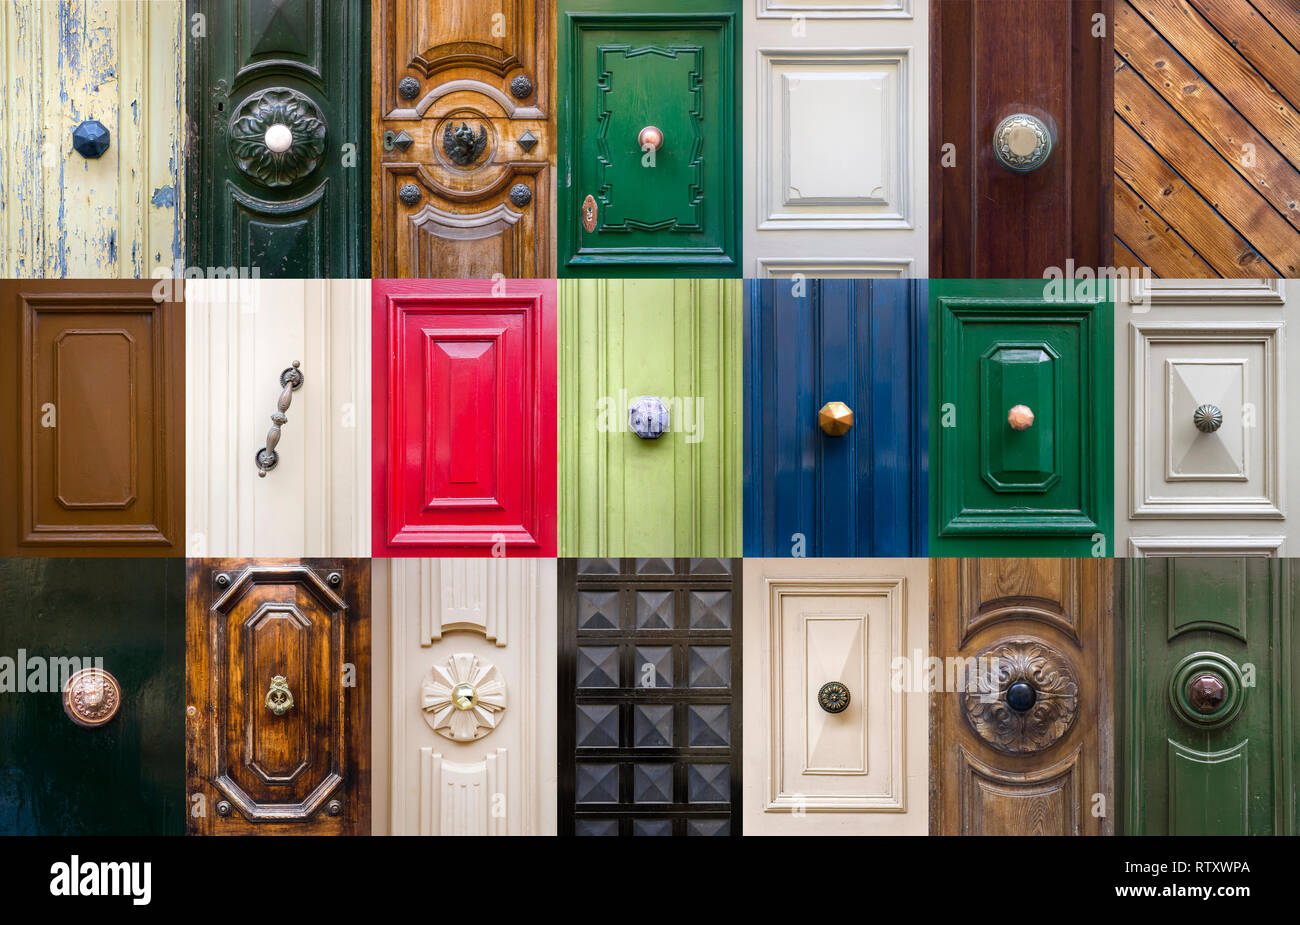 Set of details from traditional front doors at buildings on Malta - Stock Image